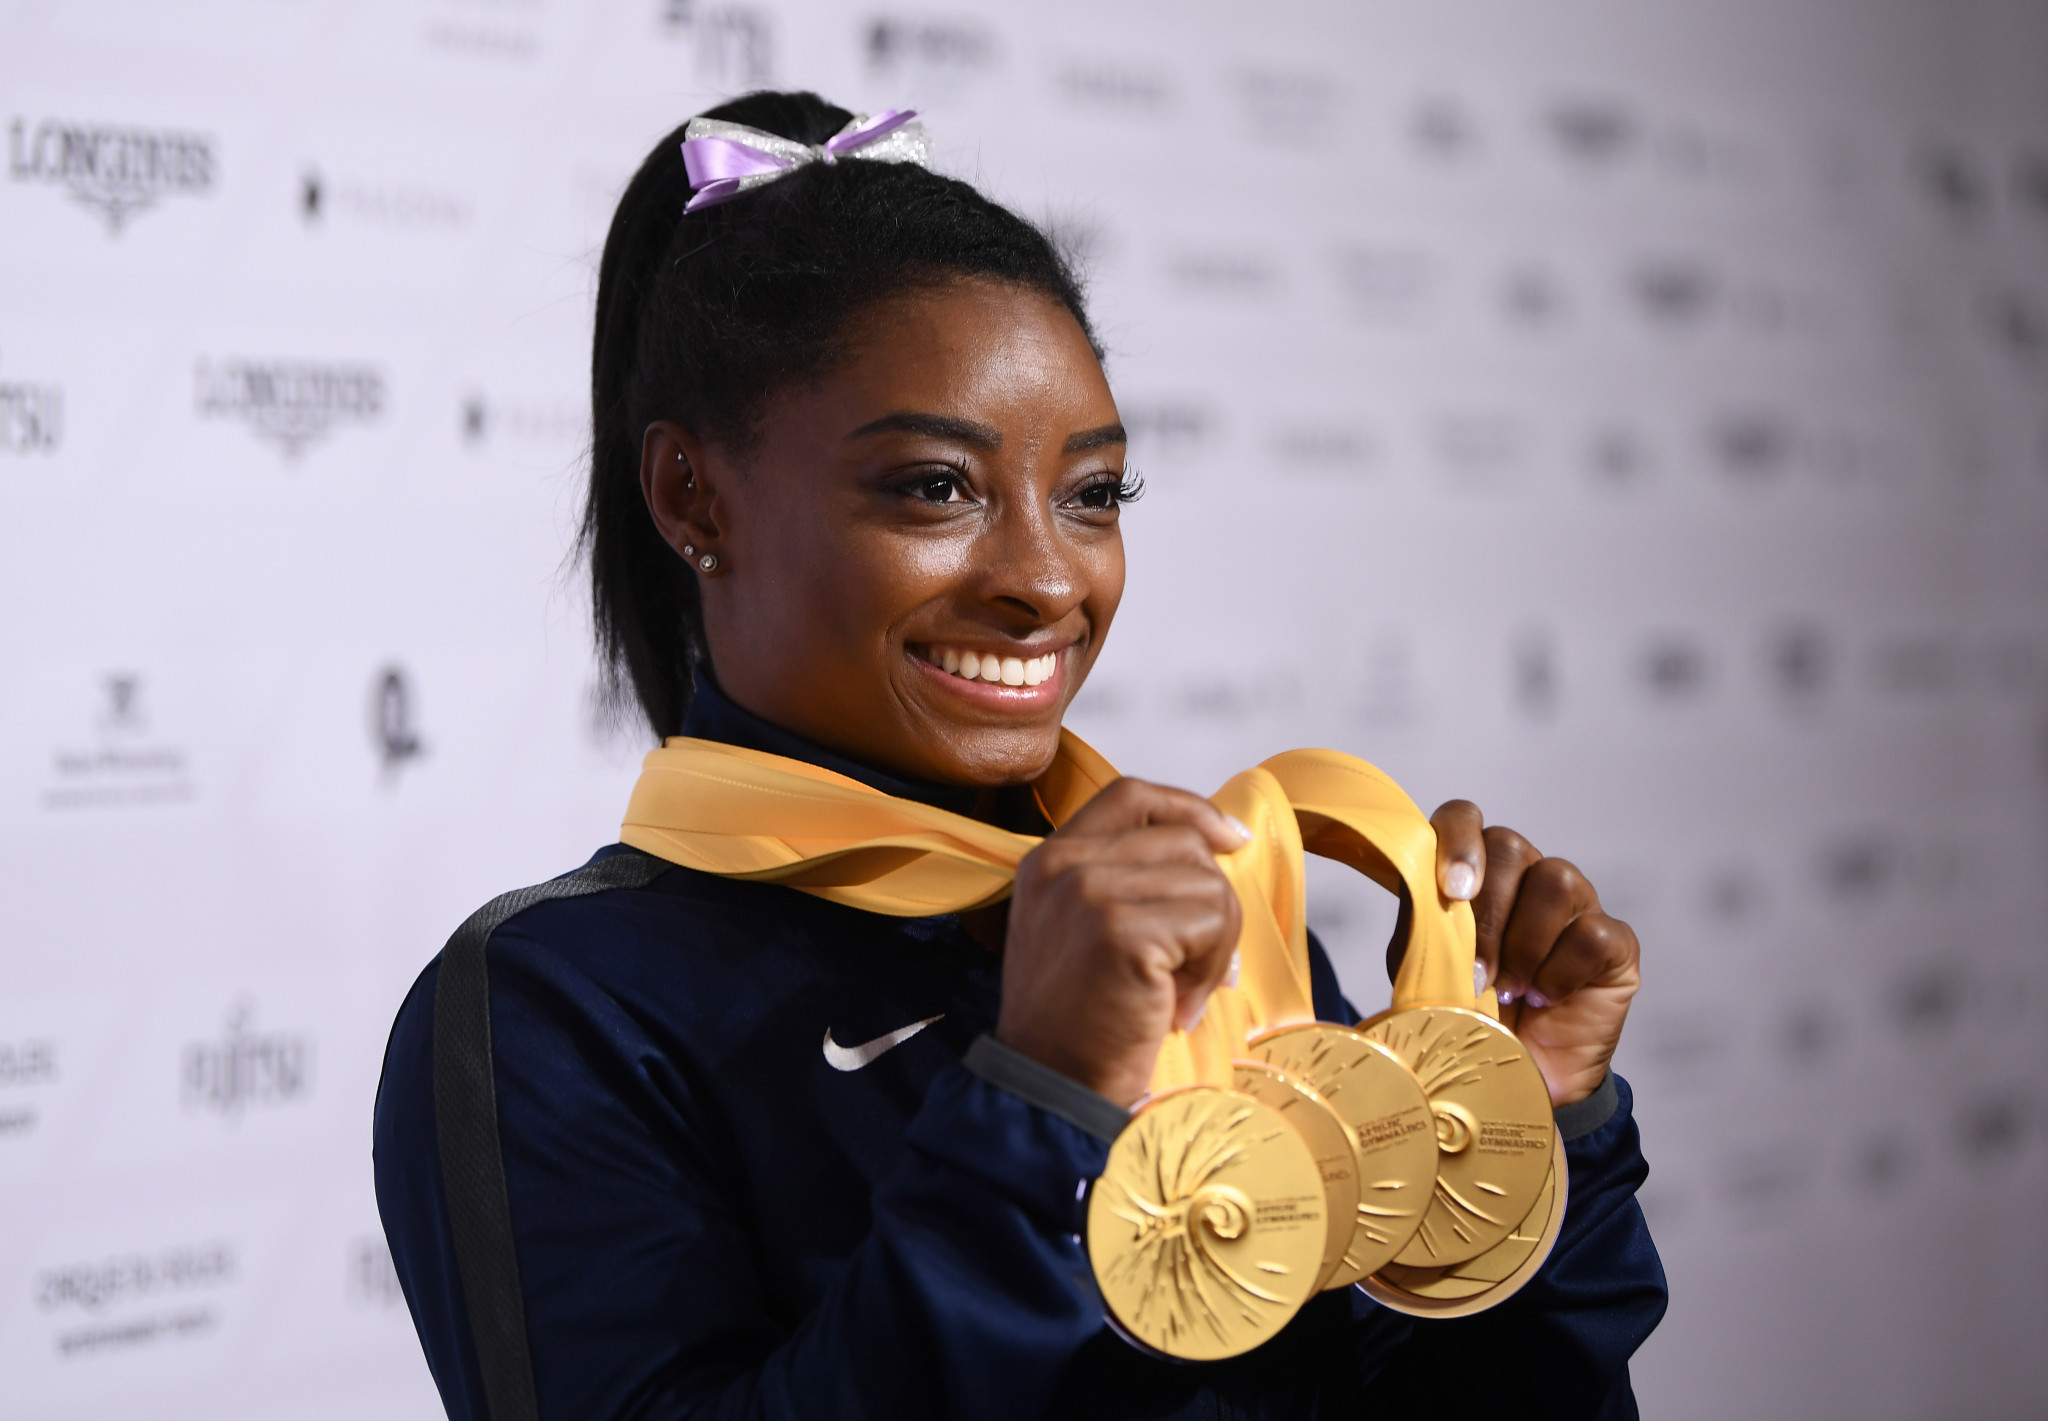 Could Simone Biles become the next must-see phenomenon of the Olympic Games? ©Getty Images